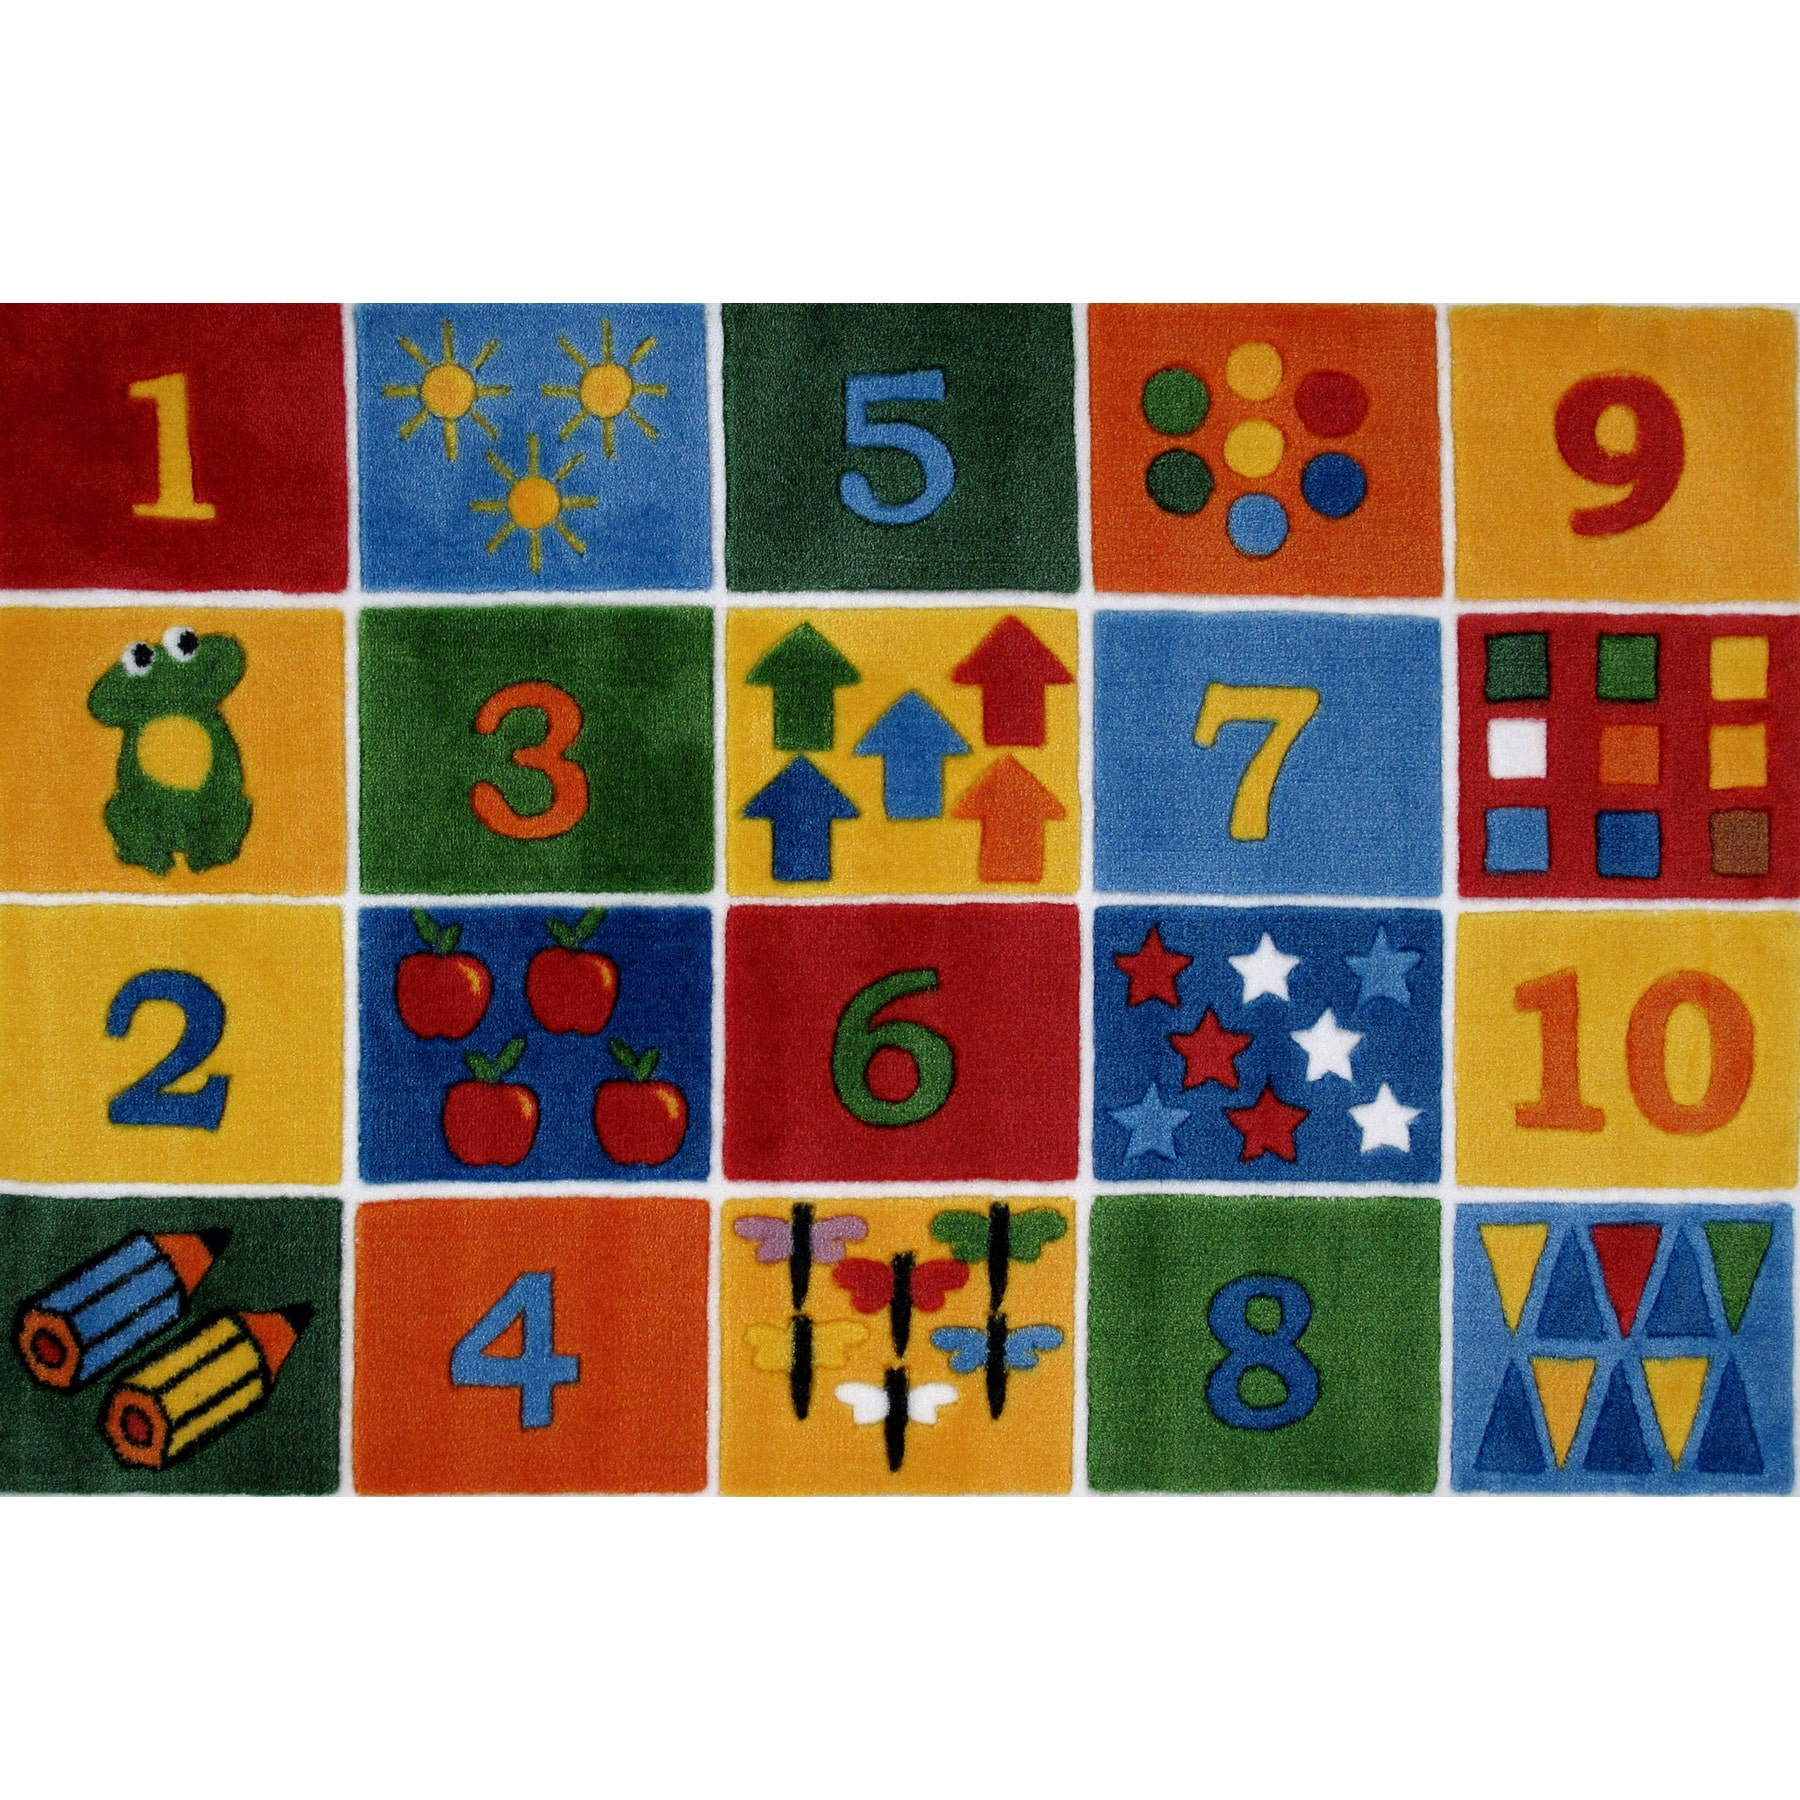 LA Rug Number Blocks Multi-colored Nylon Area Rug (3'3 x 4'8)